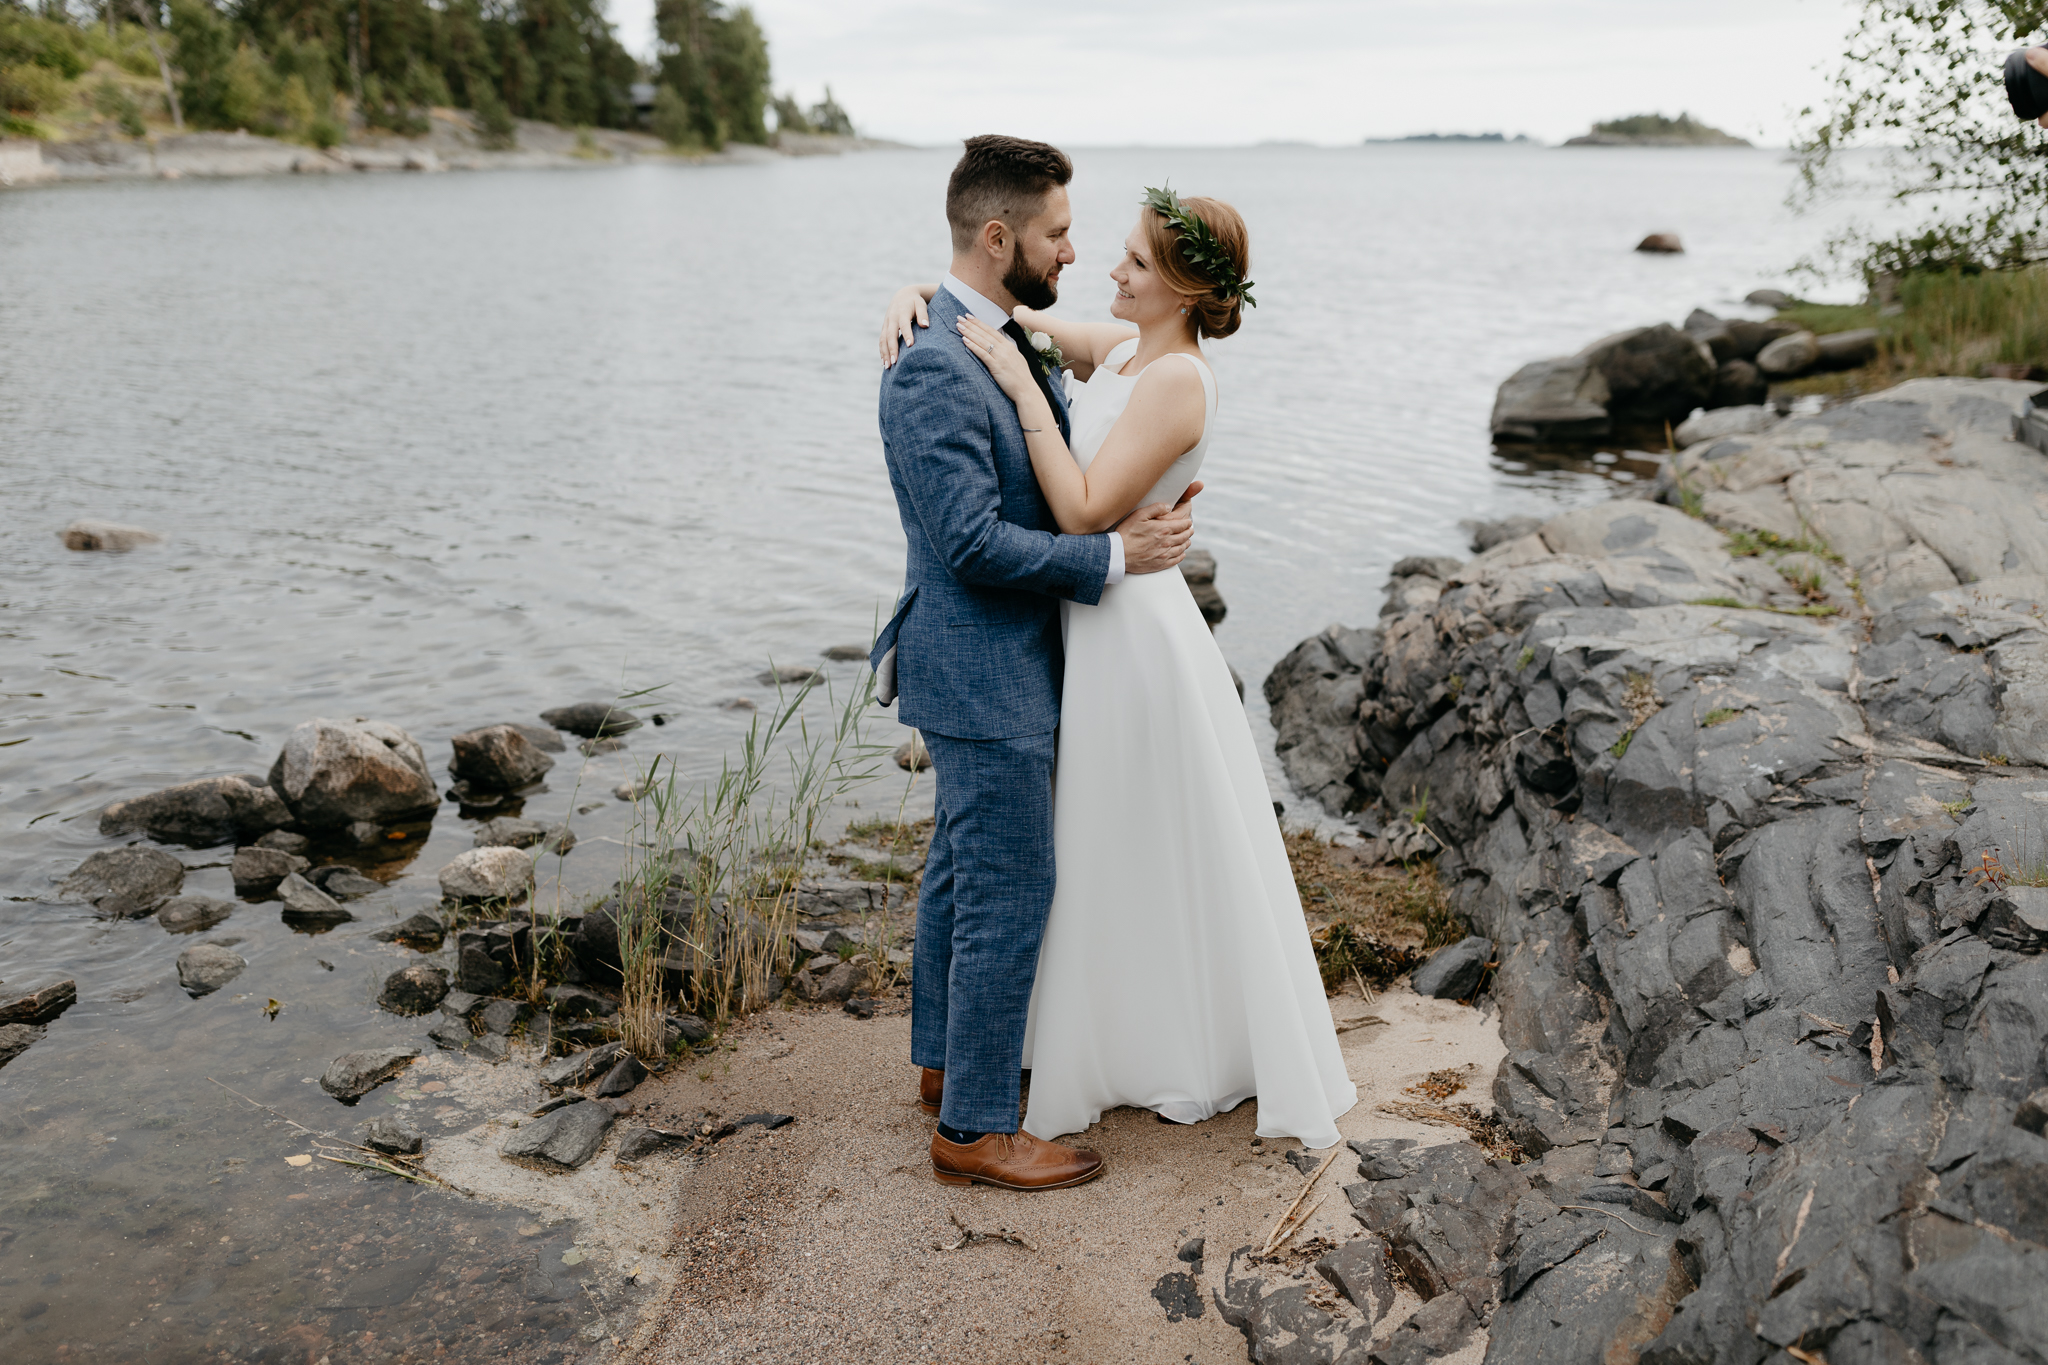 Vilhelmiina + Mark | Photo by Patrick Karkkolainen Wedding Photographer | Helsinki Wedding Photographer-171.jpg